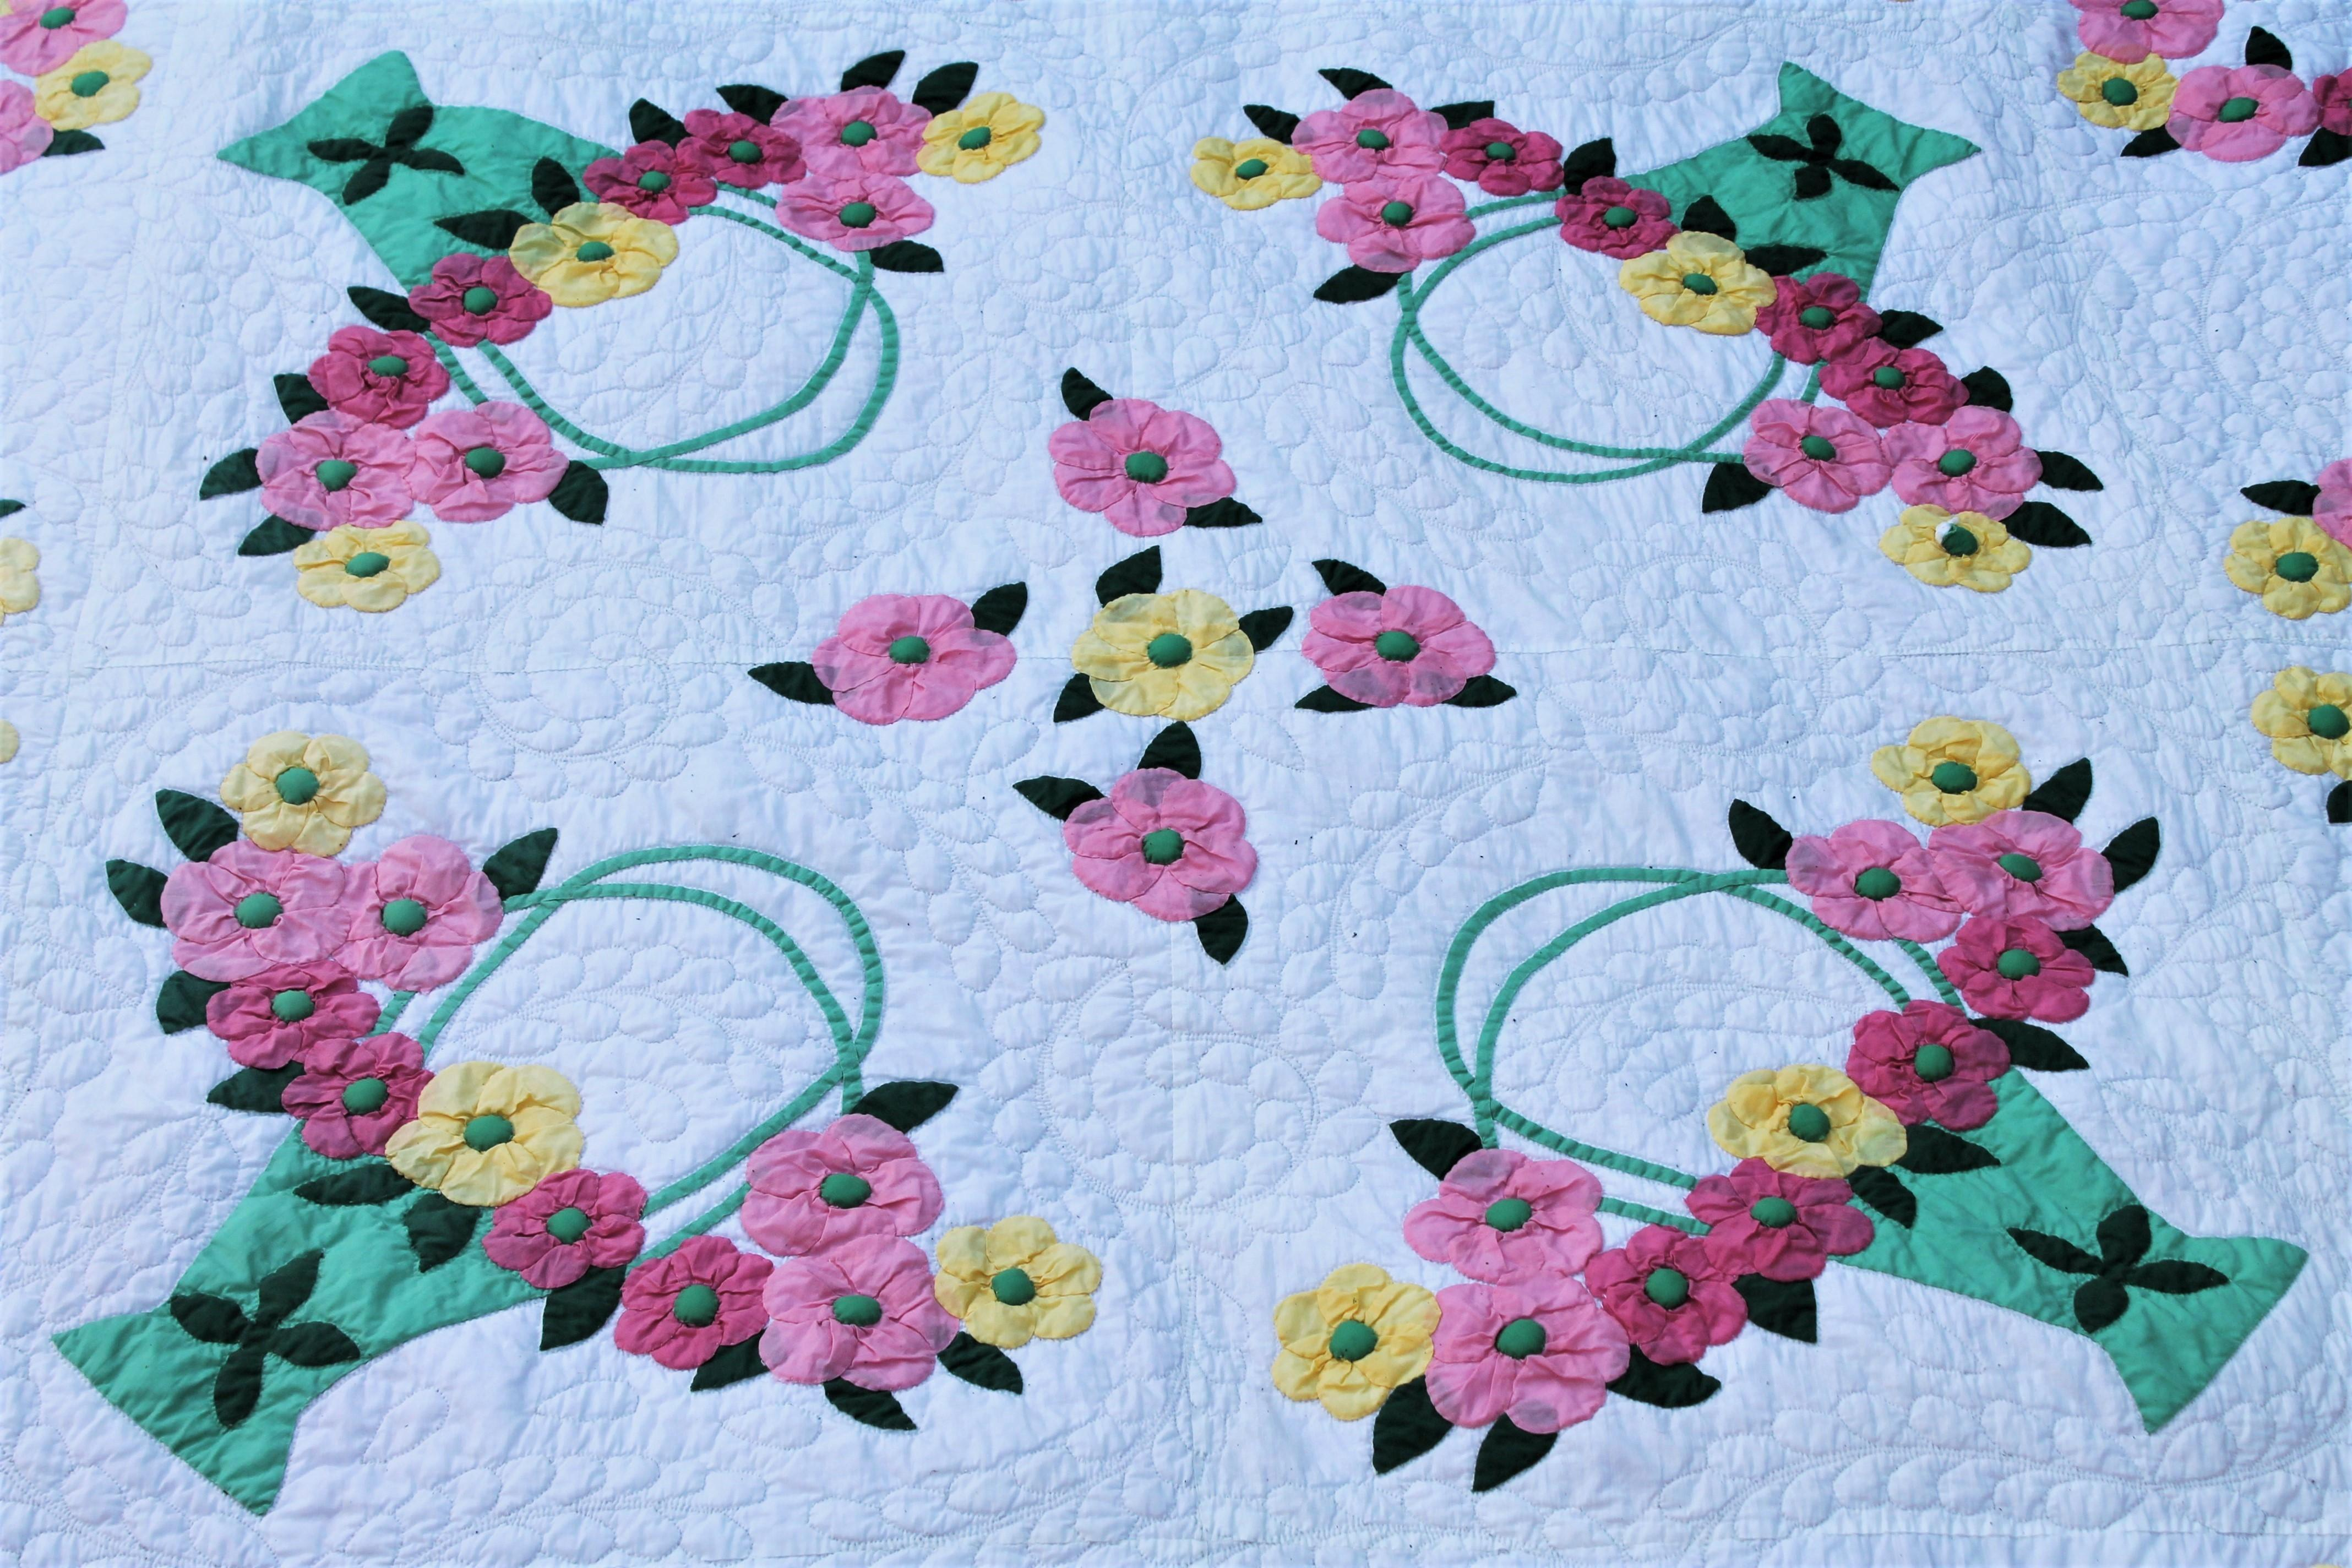 Antique applique quilt of dogwood flowers for sale at stdibs